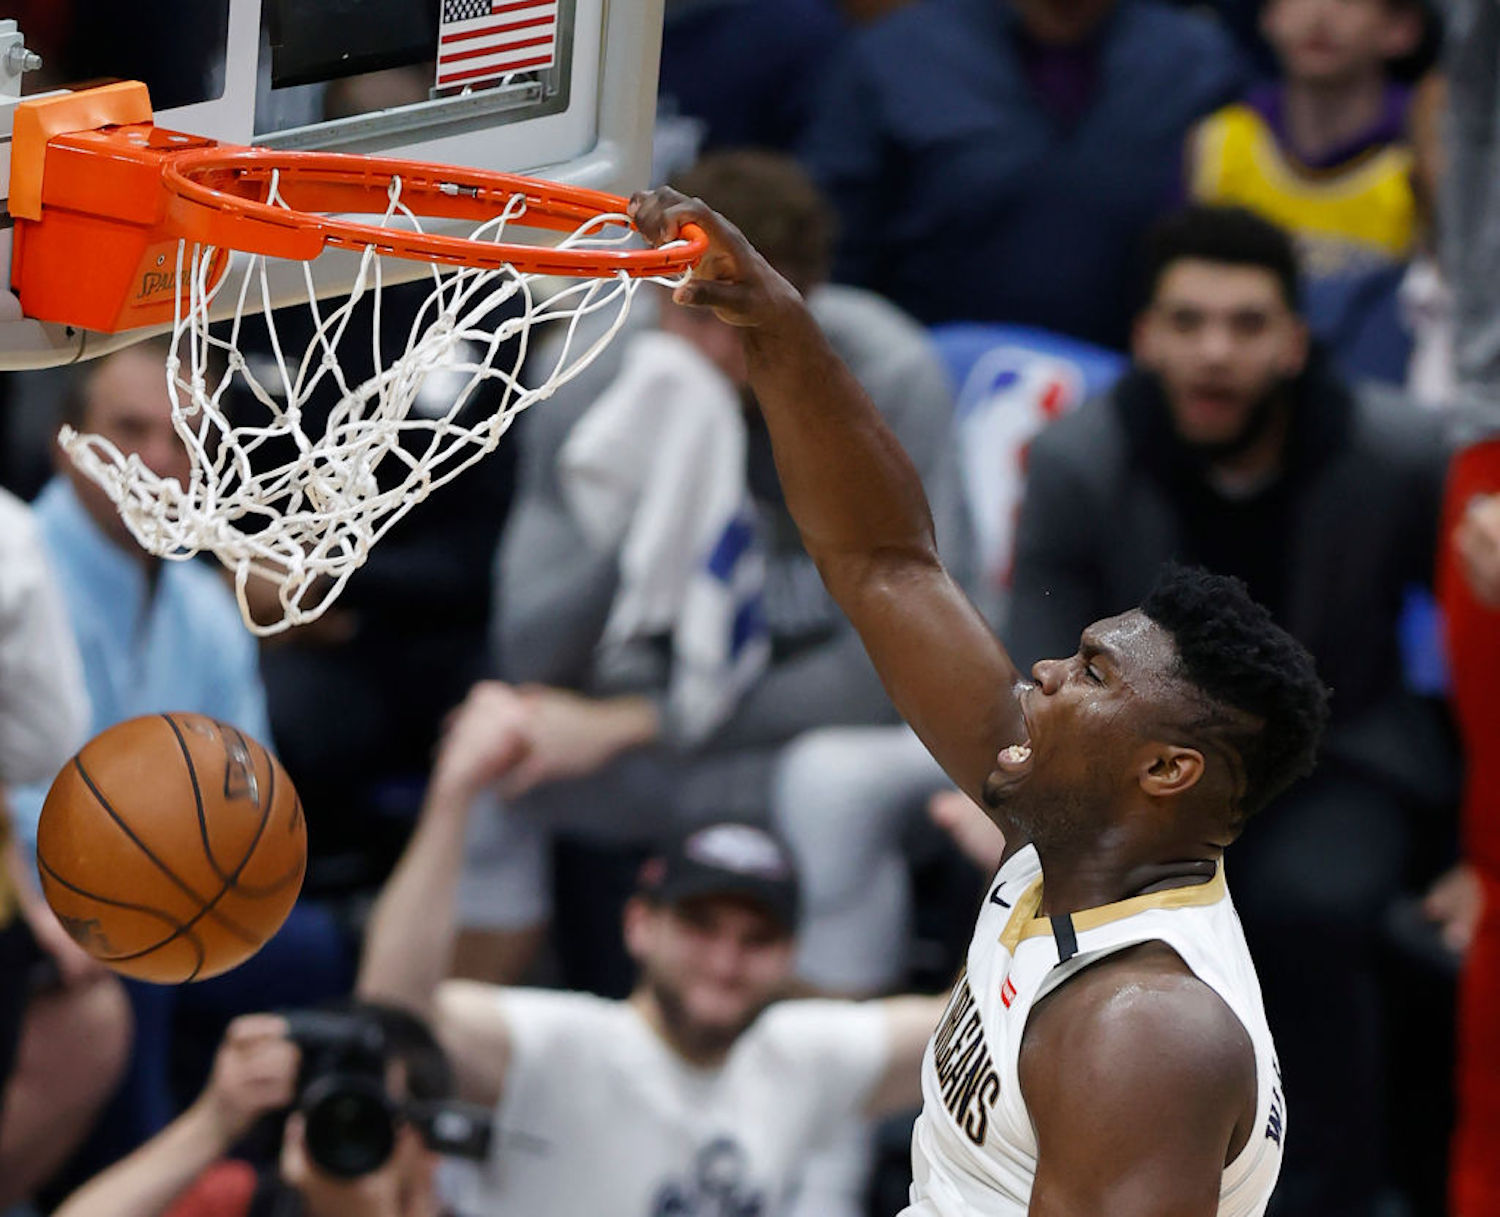 Zion Williamson was impressive last season as a rookie, but Pelicans VP David Griffin says we haven't even seen him at his best yet.